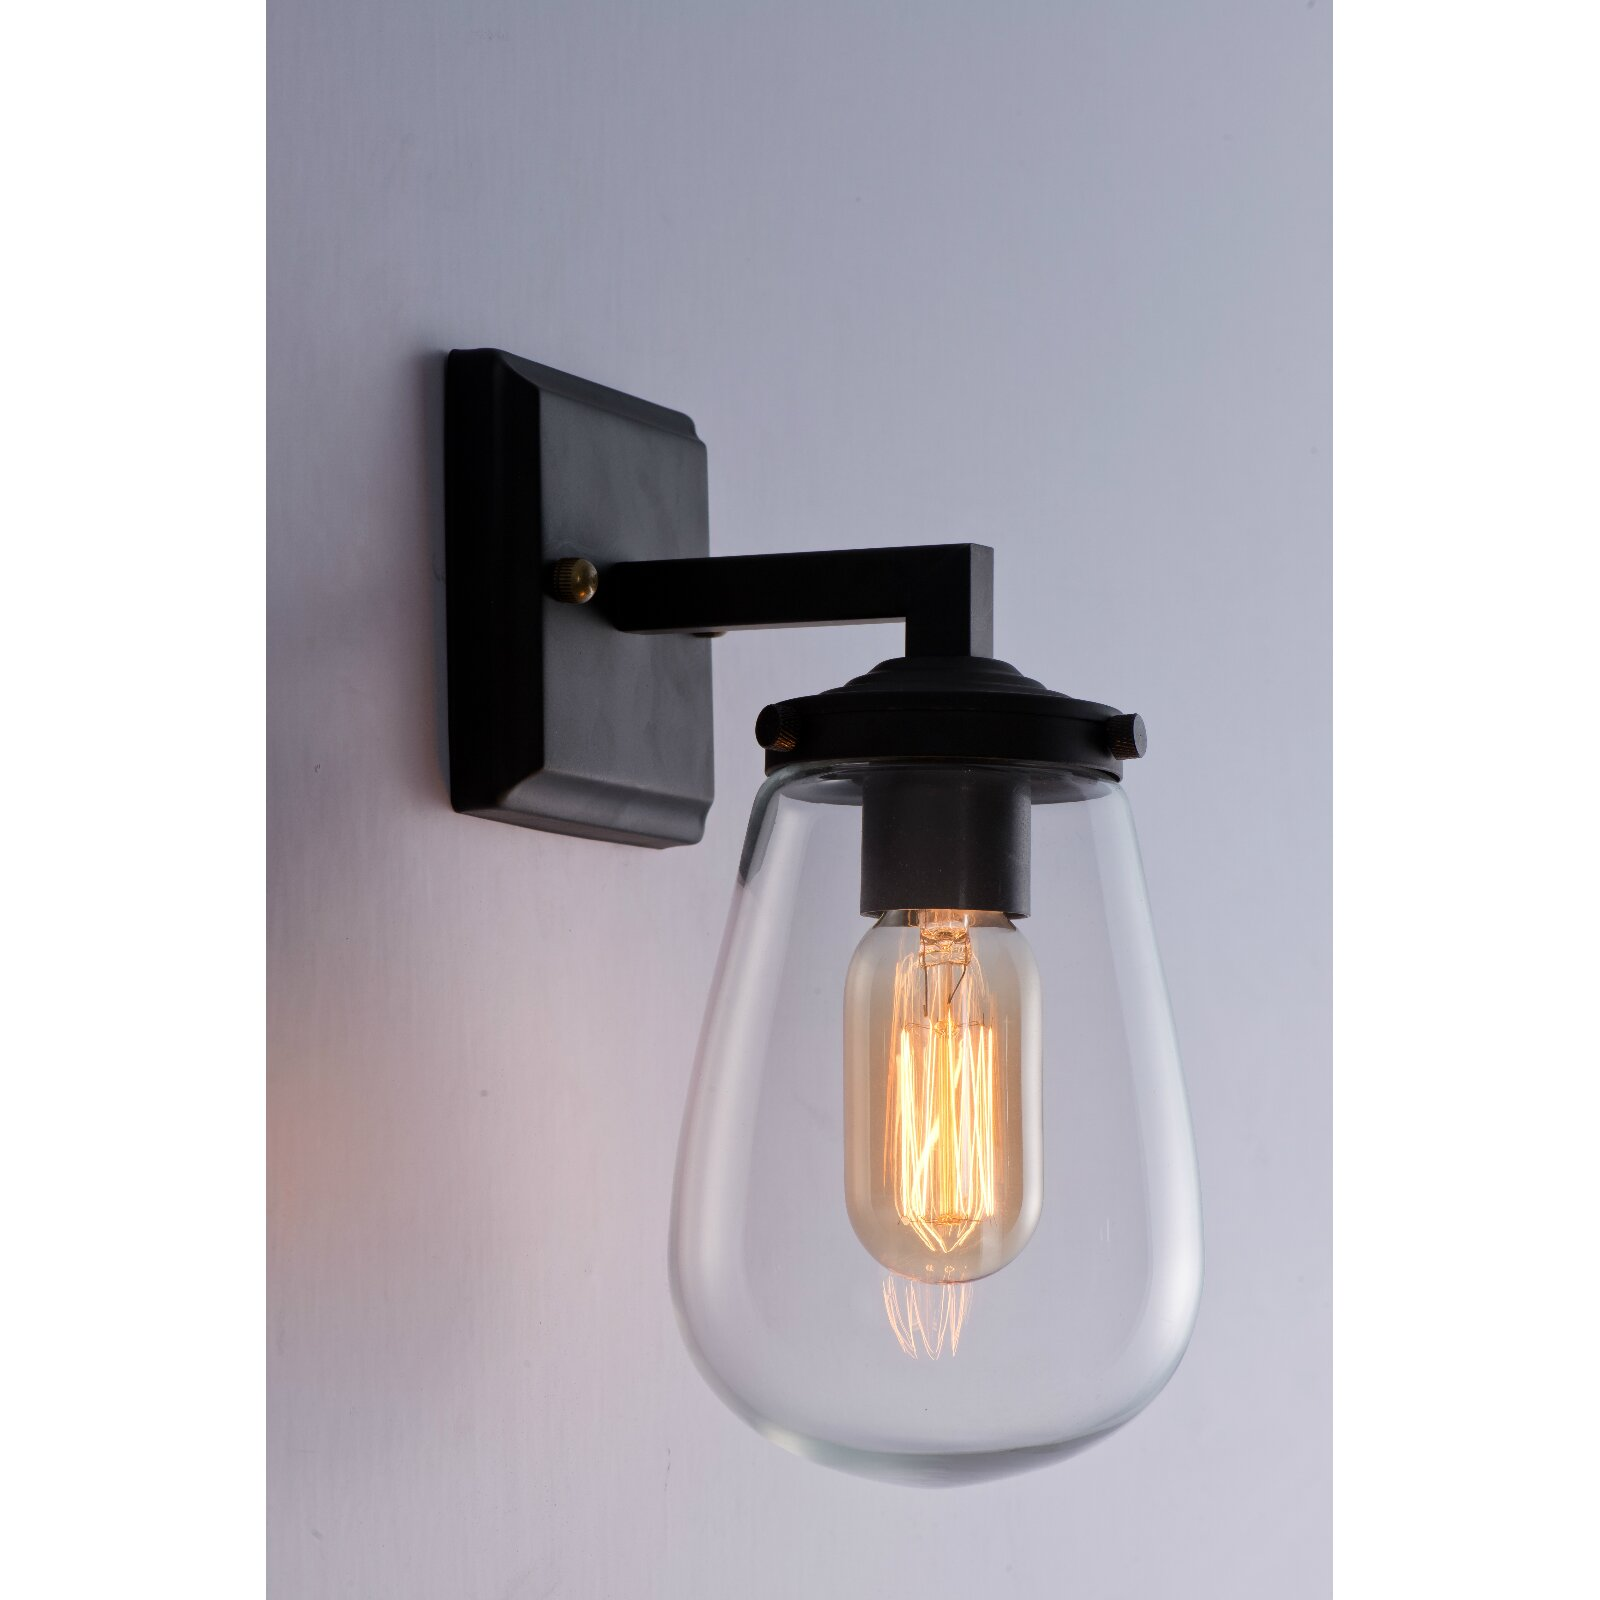 Wall Sconce With Magnifying Glass : LightingWorld 1 Light Wall Sconce & Reviews Wayfair.ca